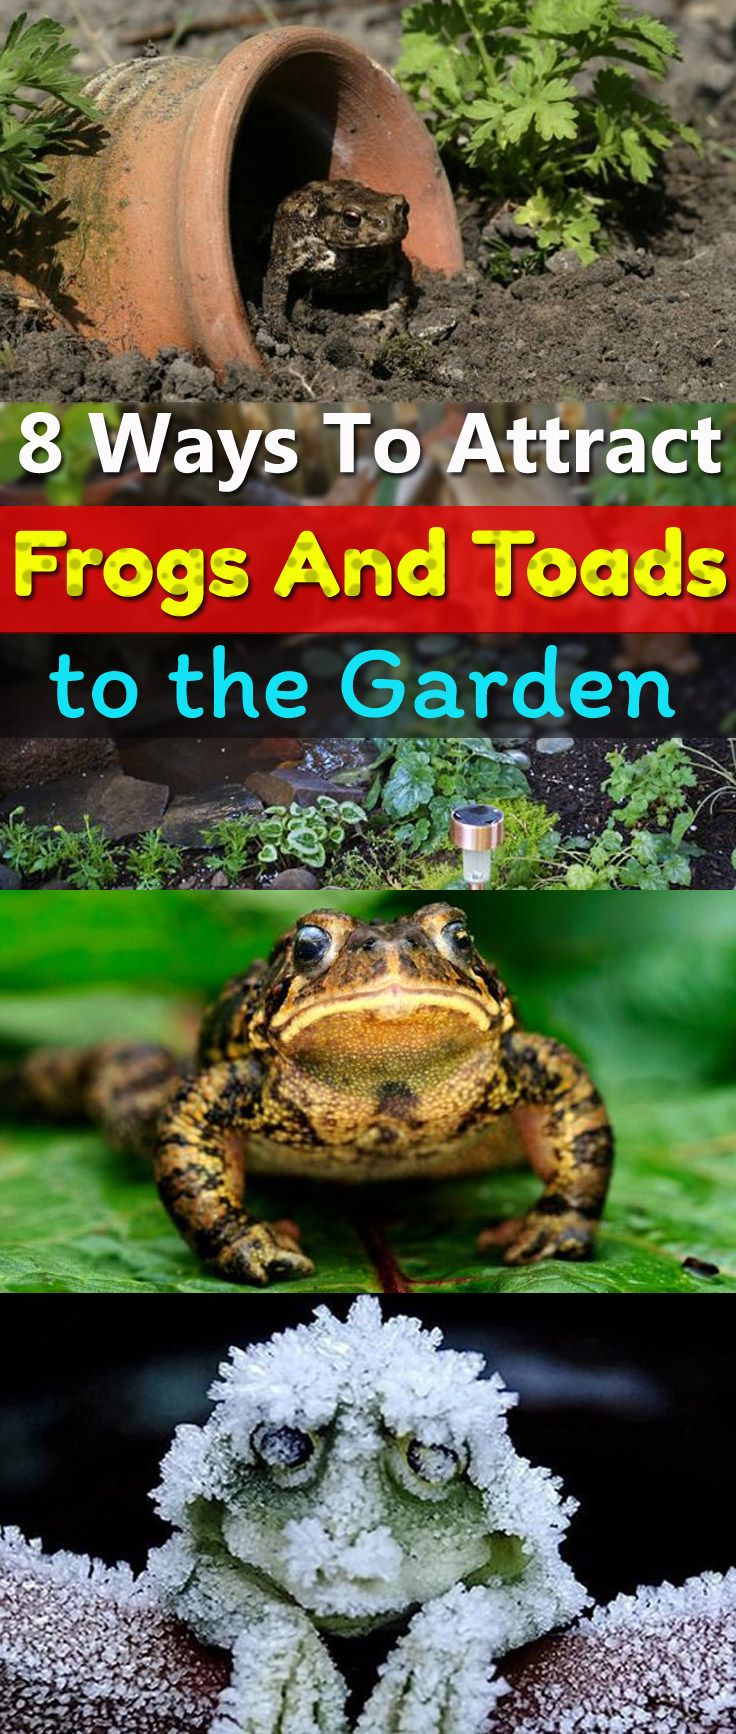 8 Ways To Attract Frogs And Toads In The Garden | Garden ...